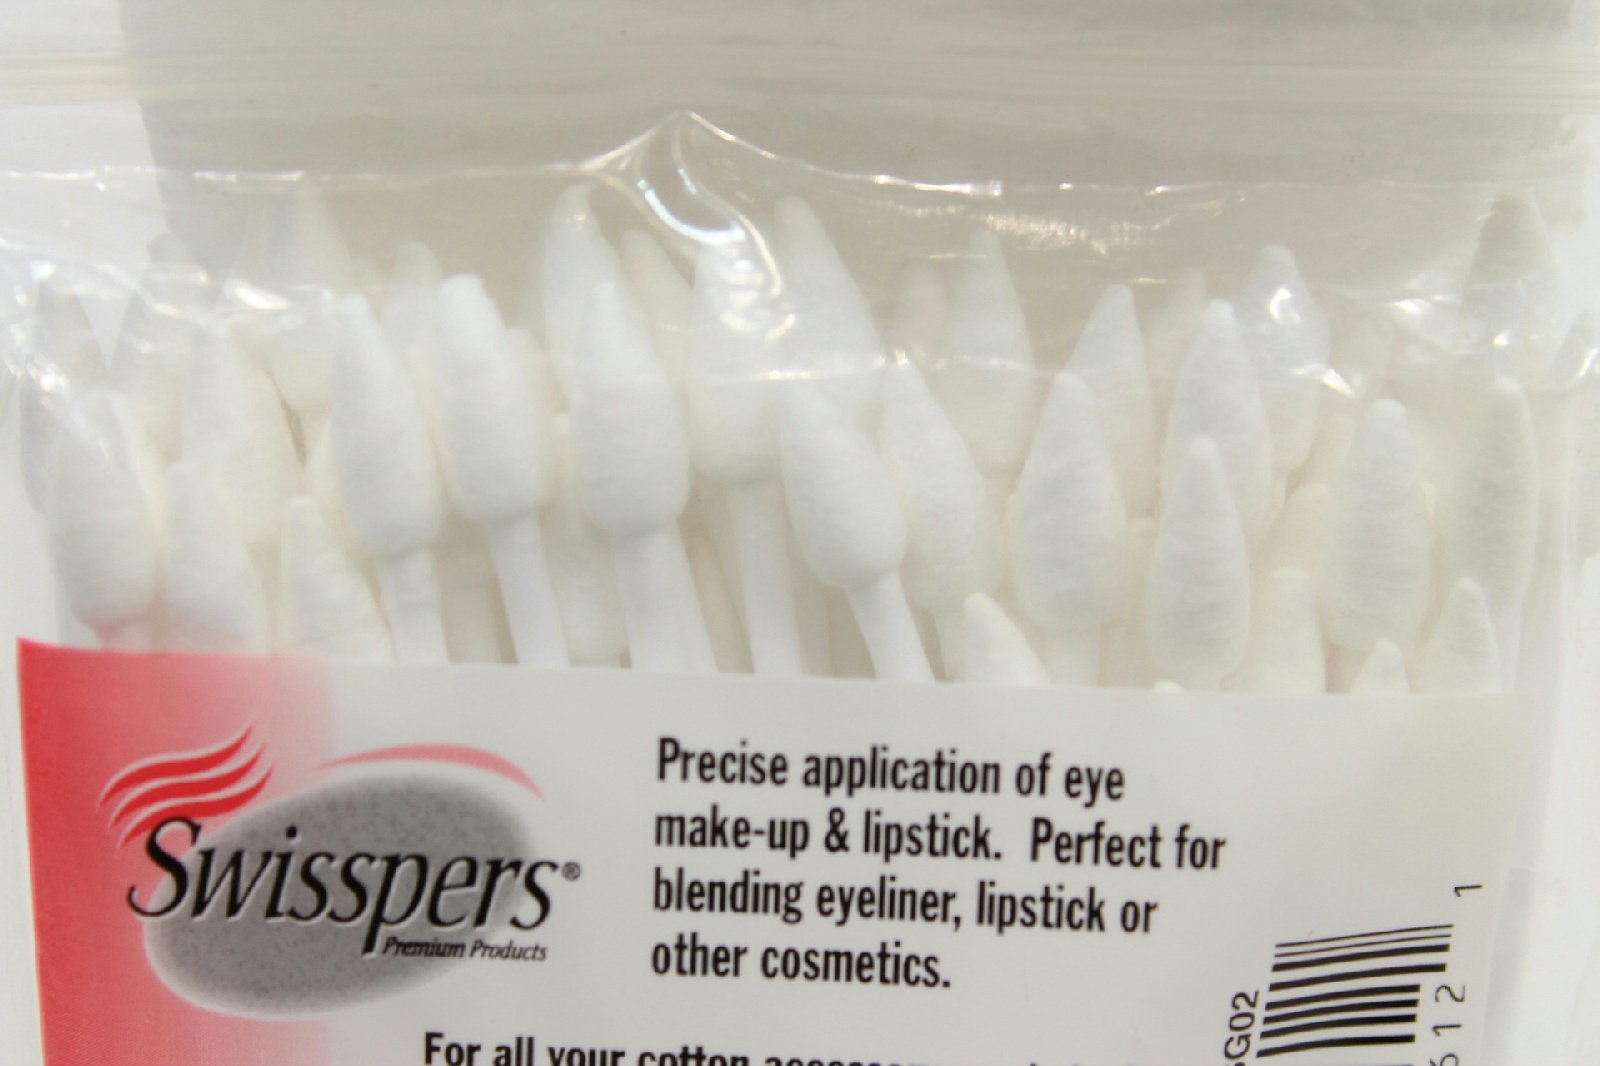 80 Count Swisspers Double-Tipped Cotton Cosmetic Applicators (Pack of 2)